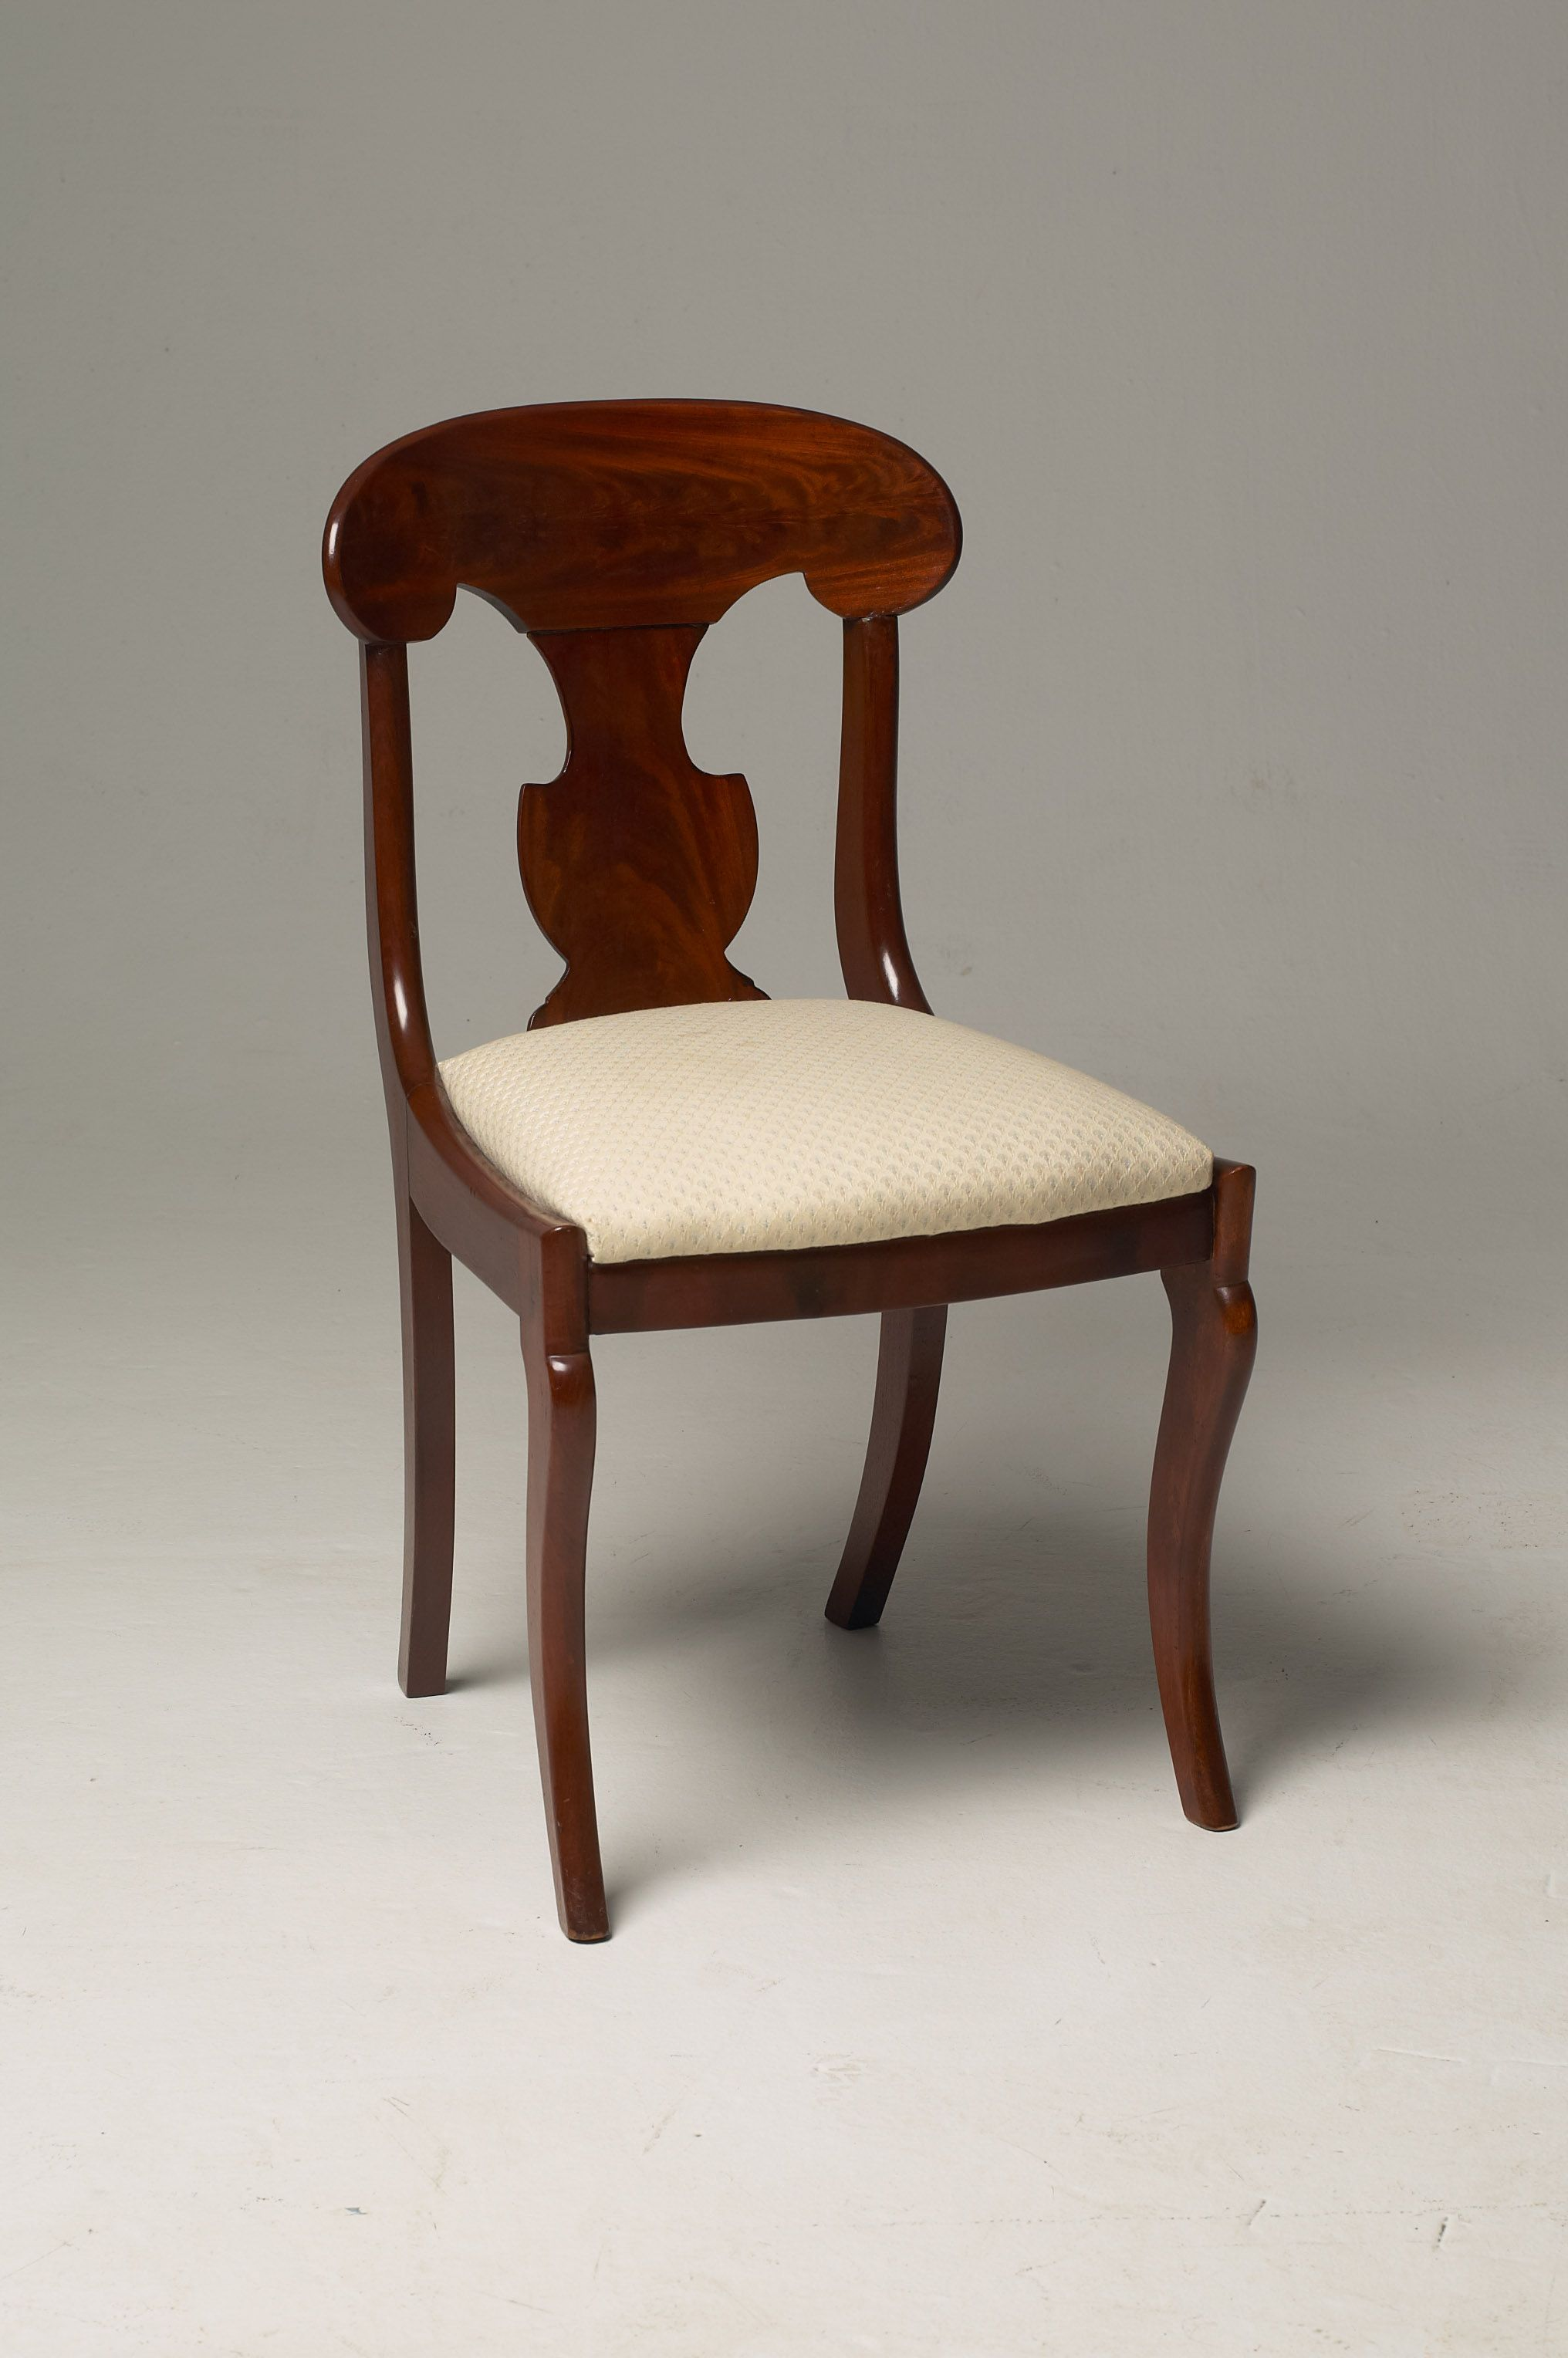 Chairs, Circa 1835, Attributed To J. & J. Meeks, New York